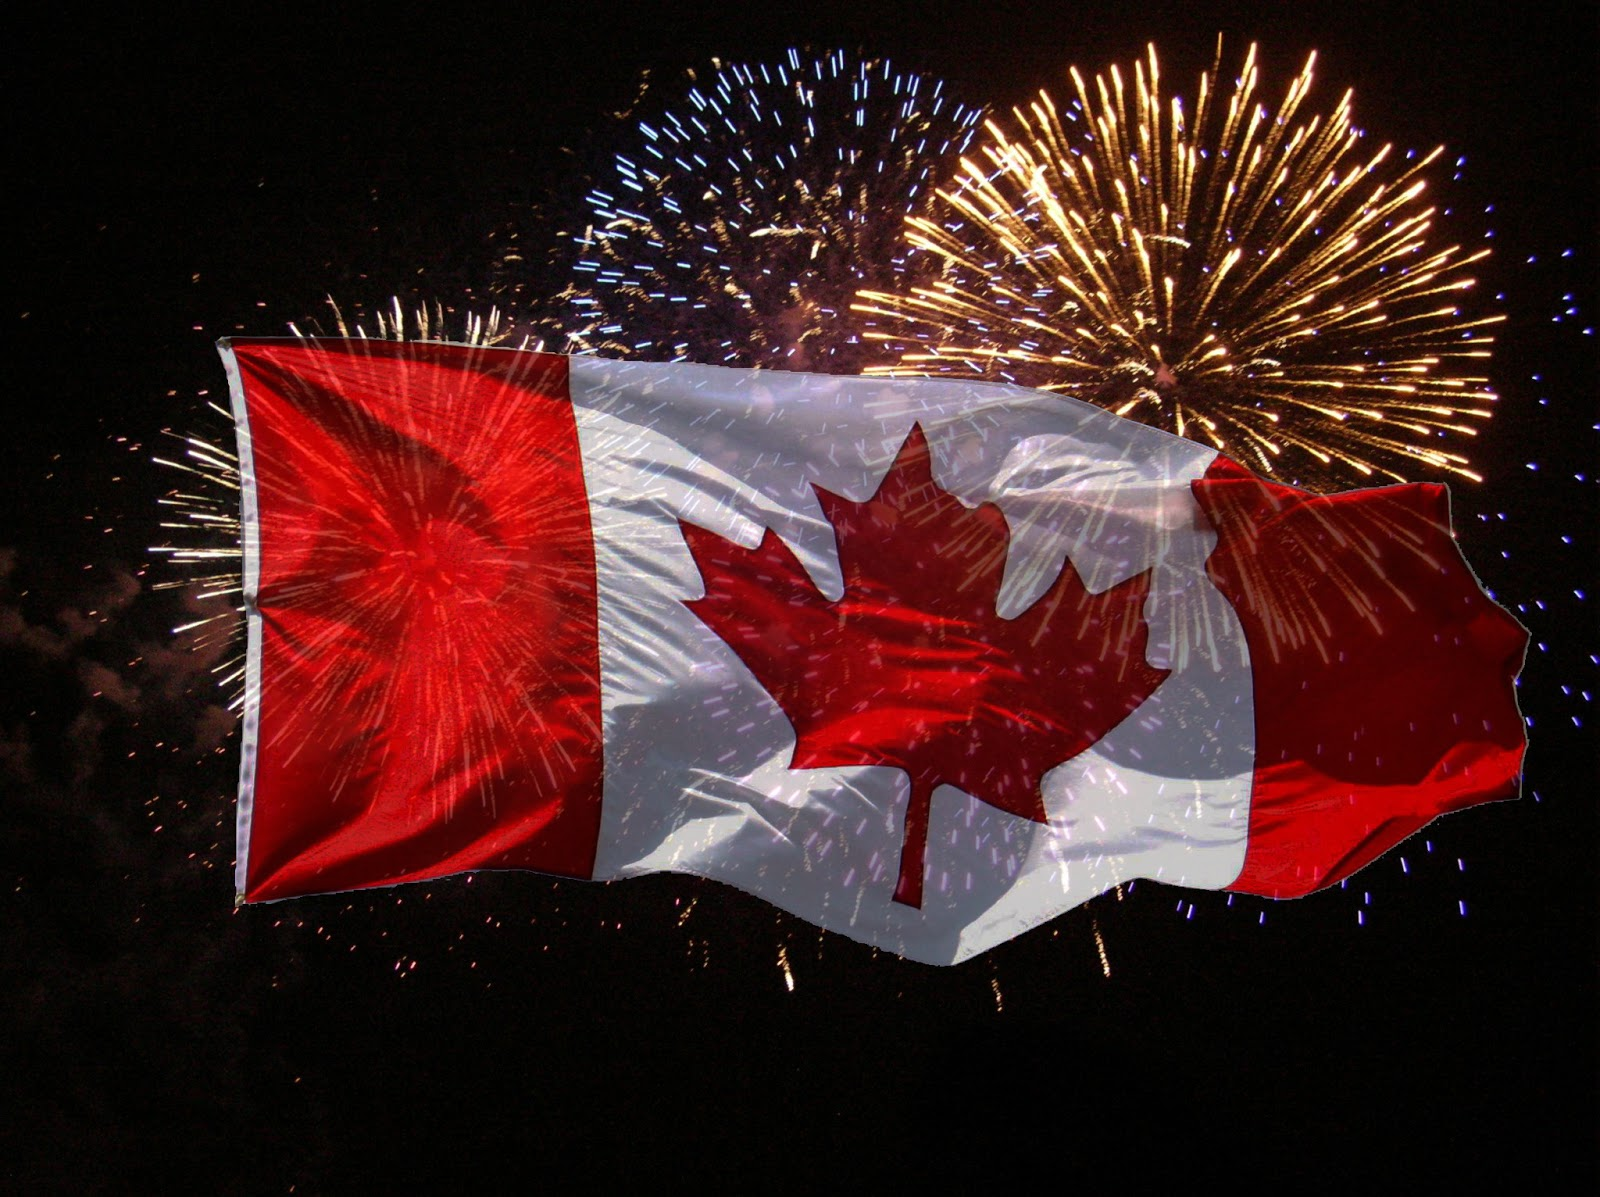 canada flag with fireworks celebrating canada day